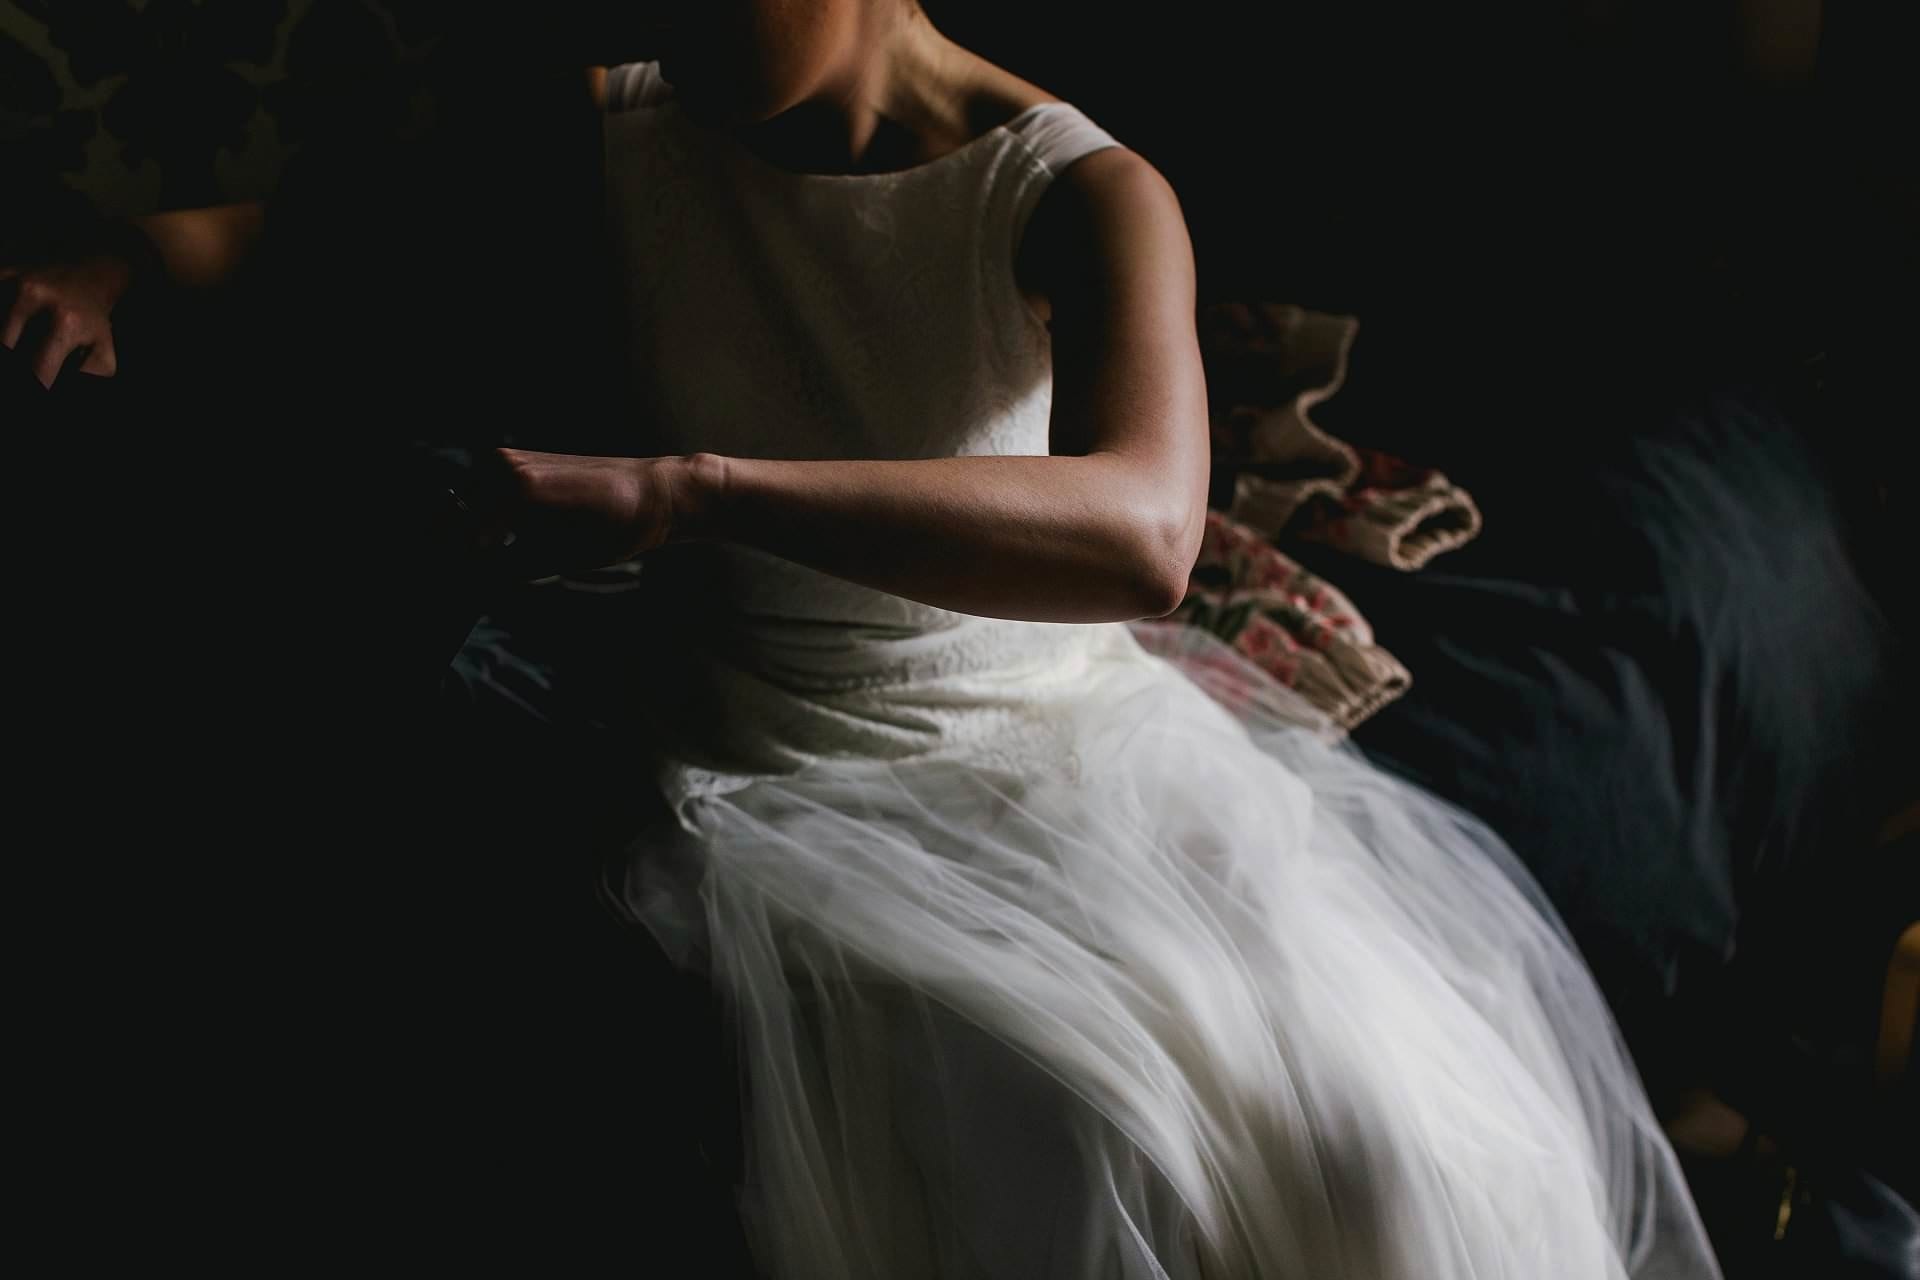 Light on brides arm and wedding dress